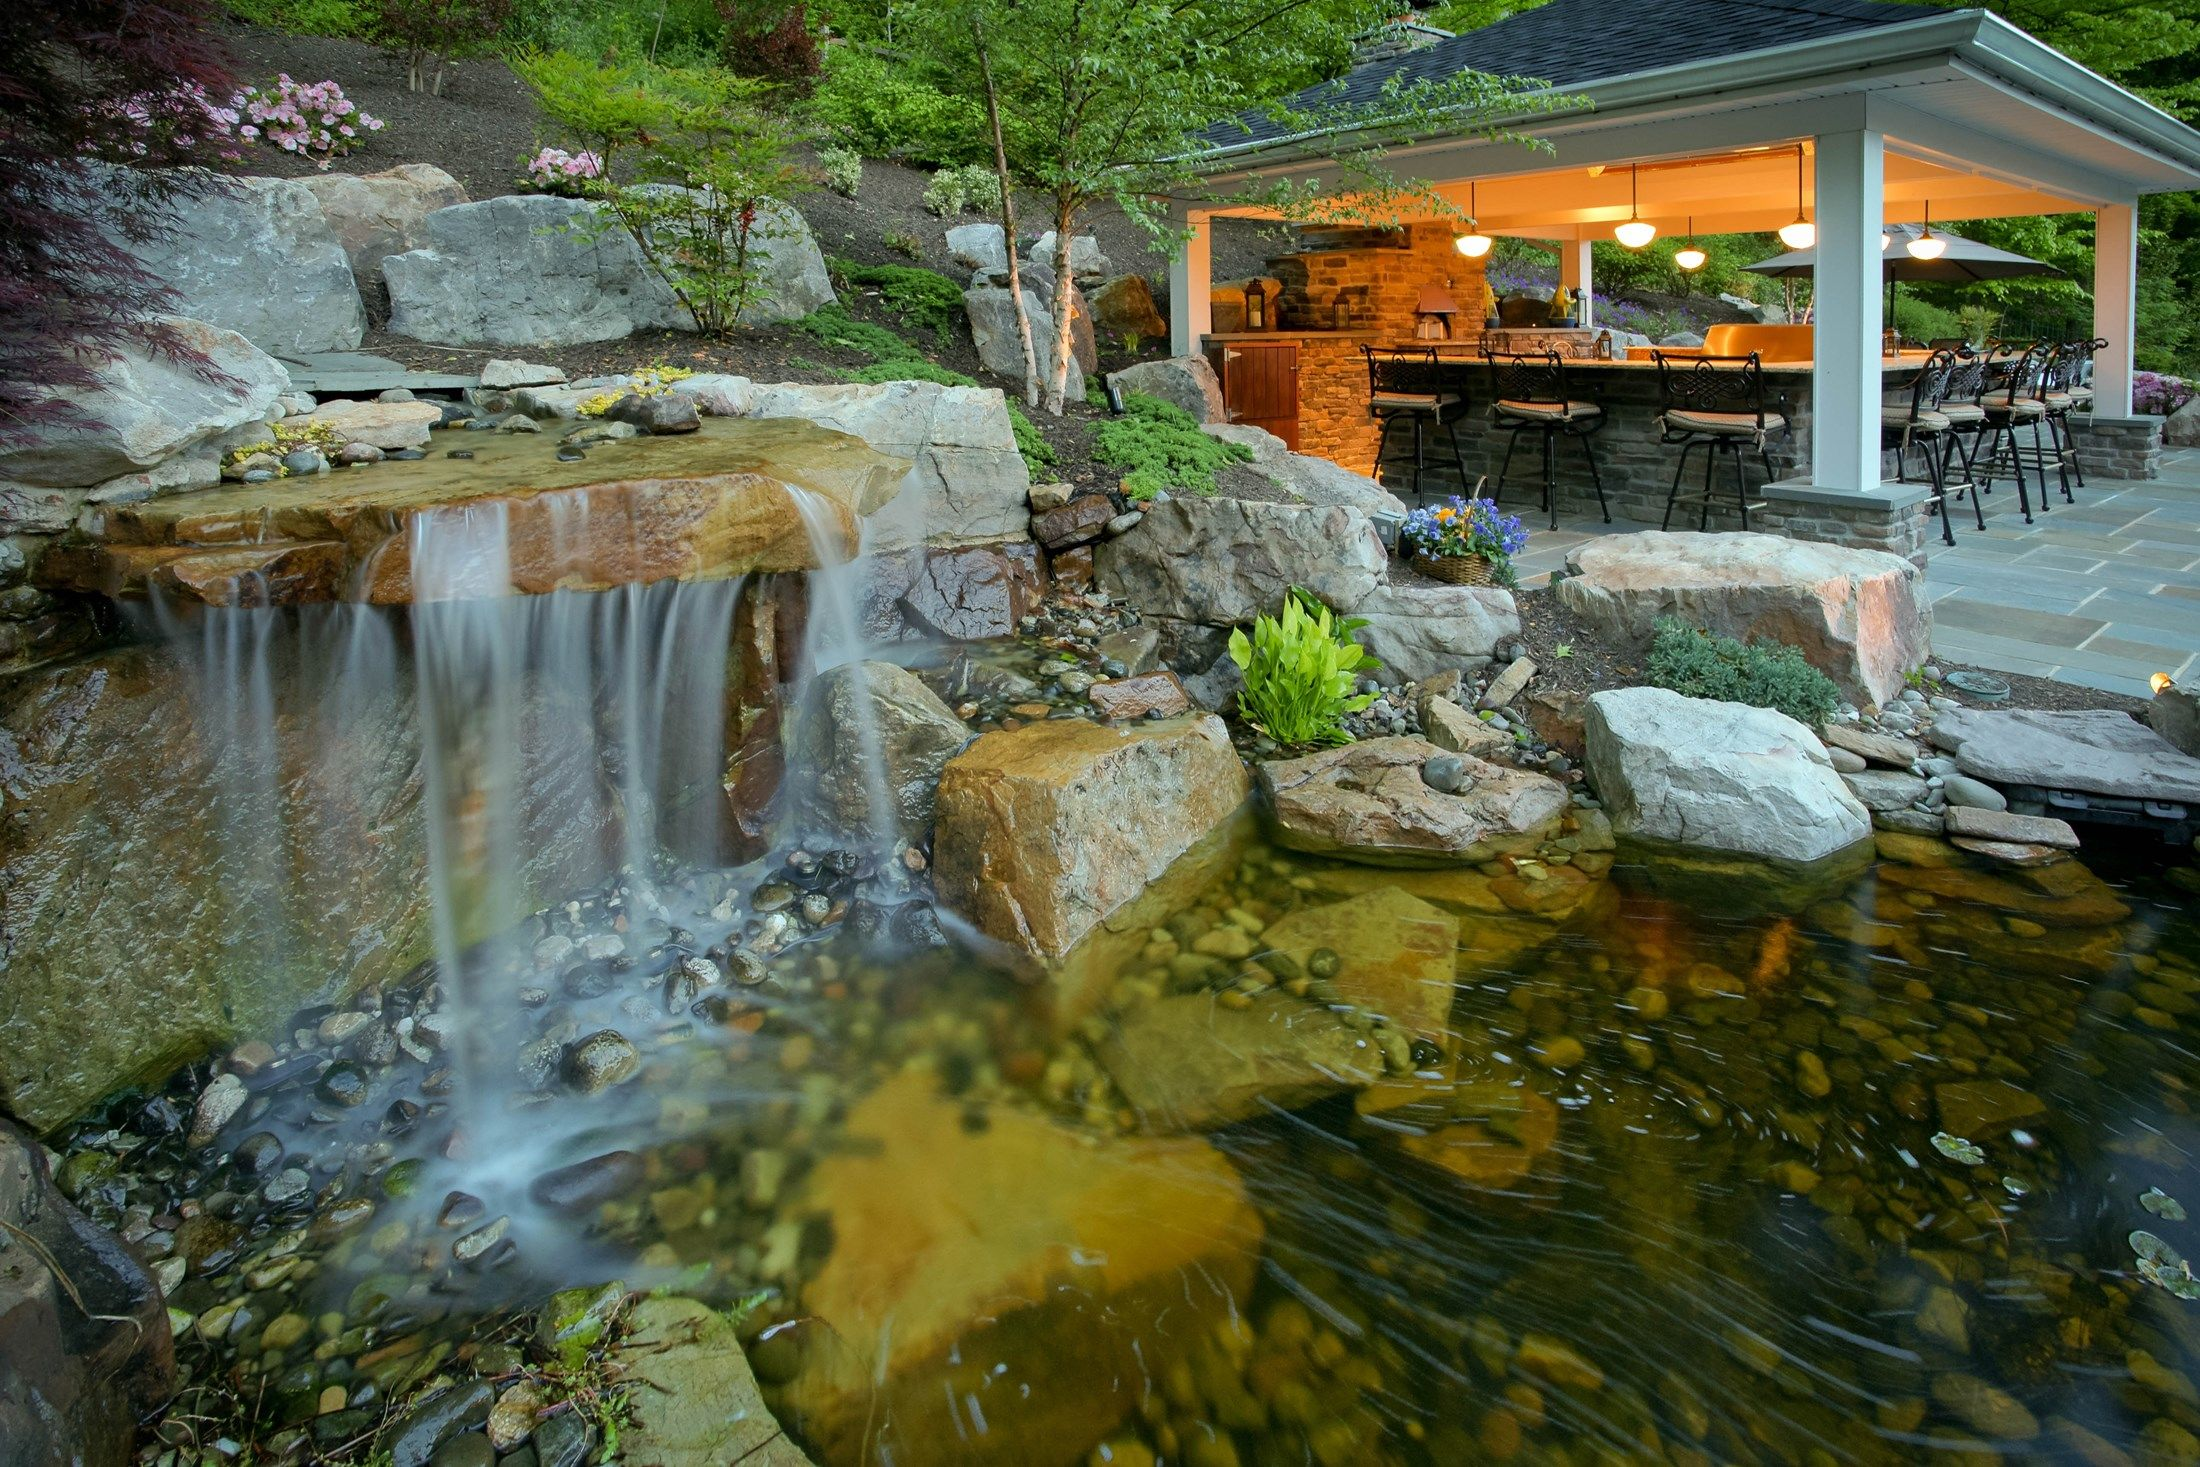 Ultimate backyard - Picture 1571